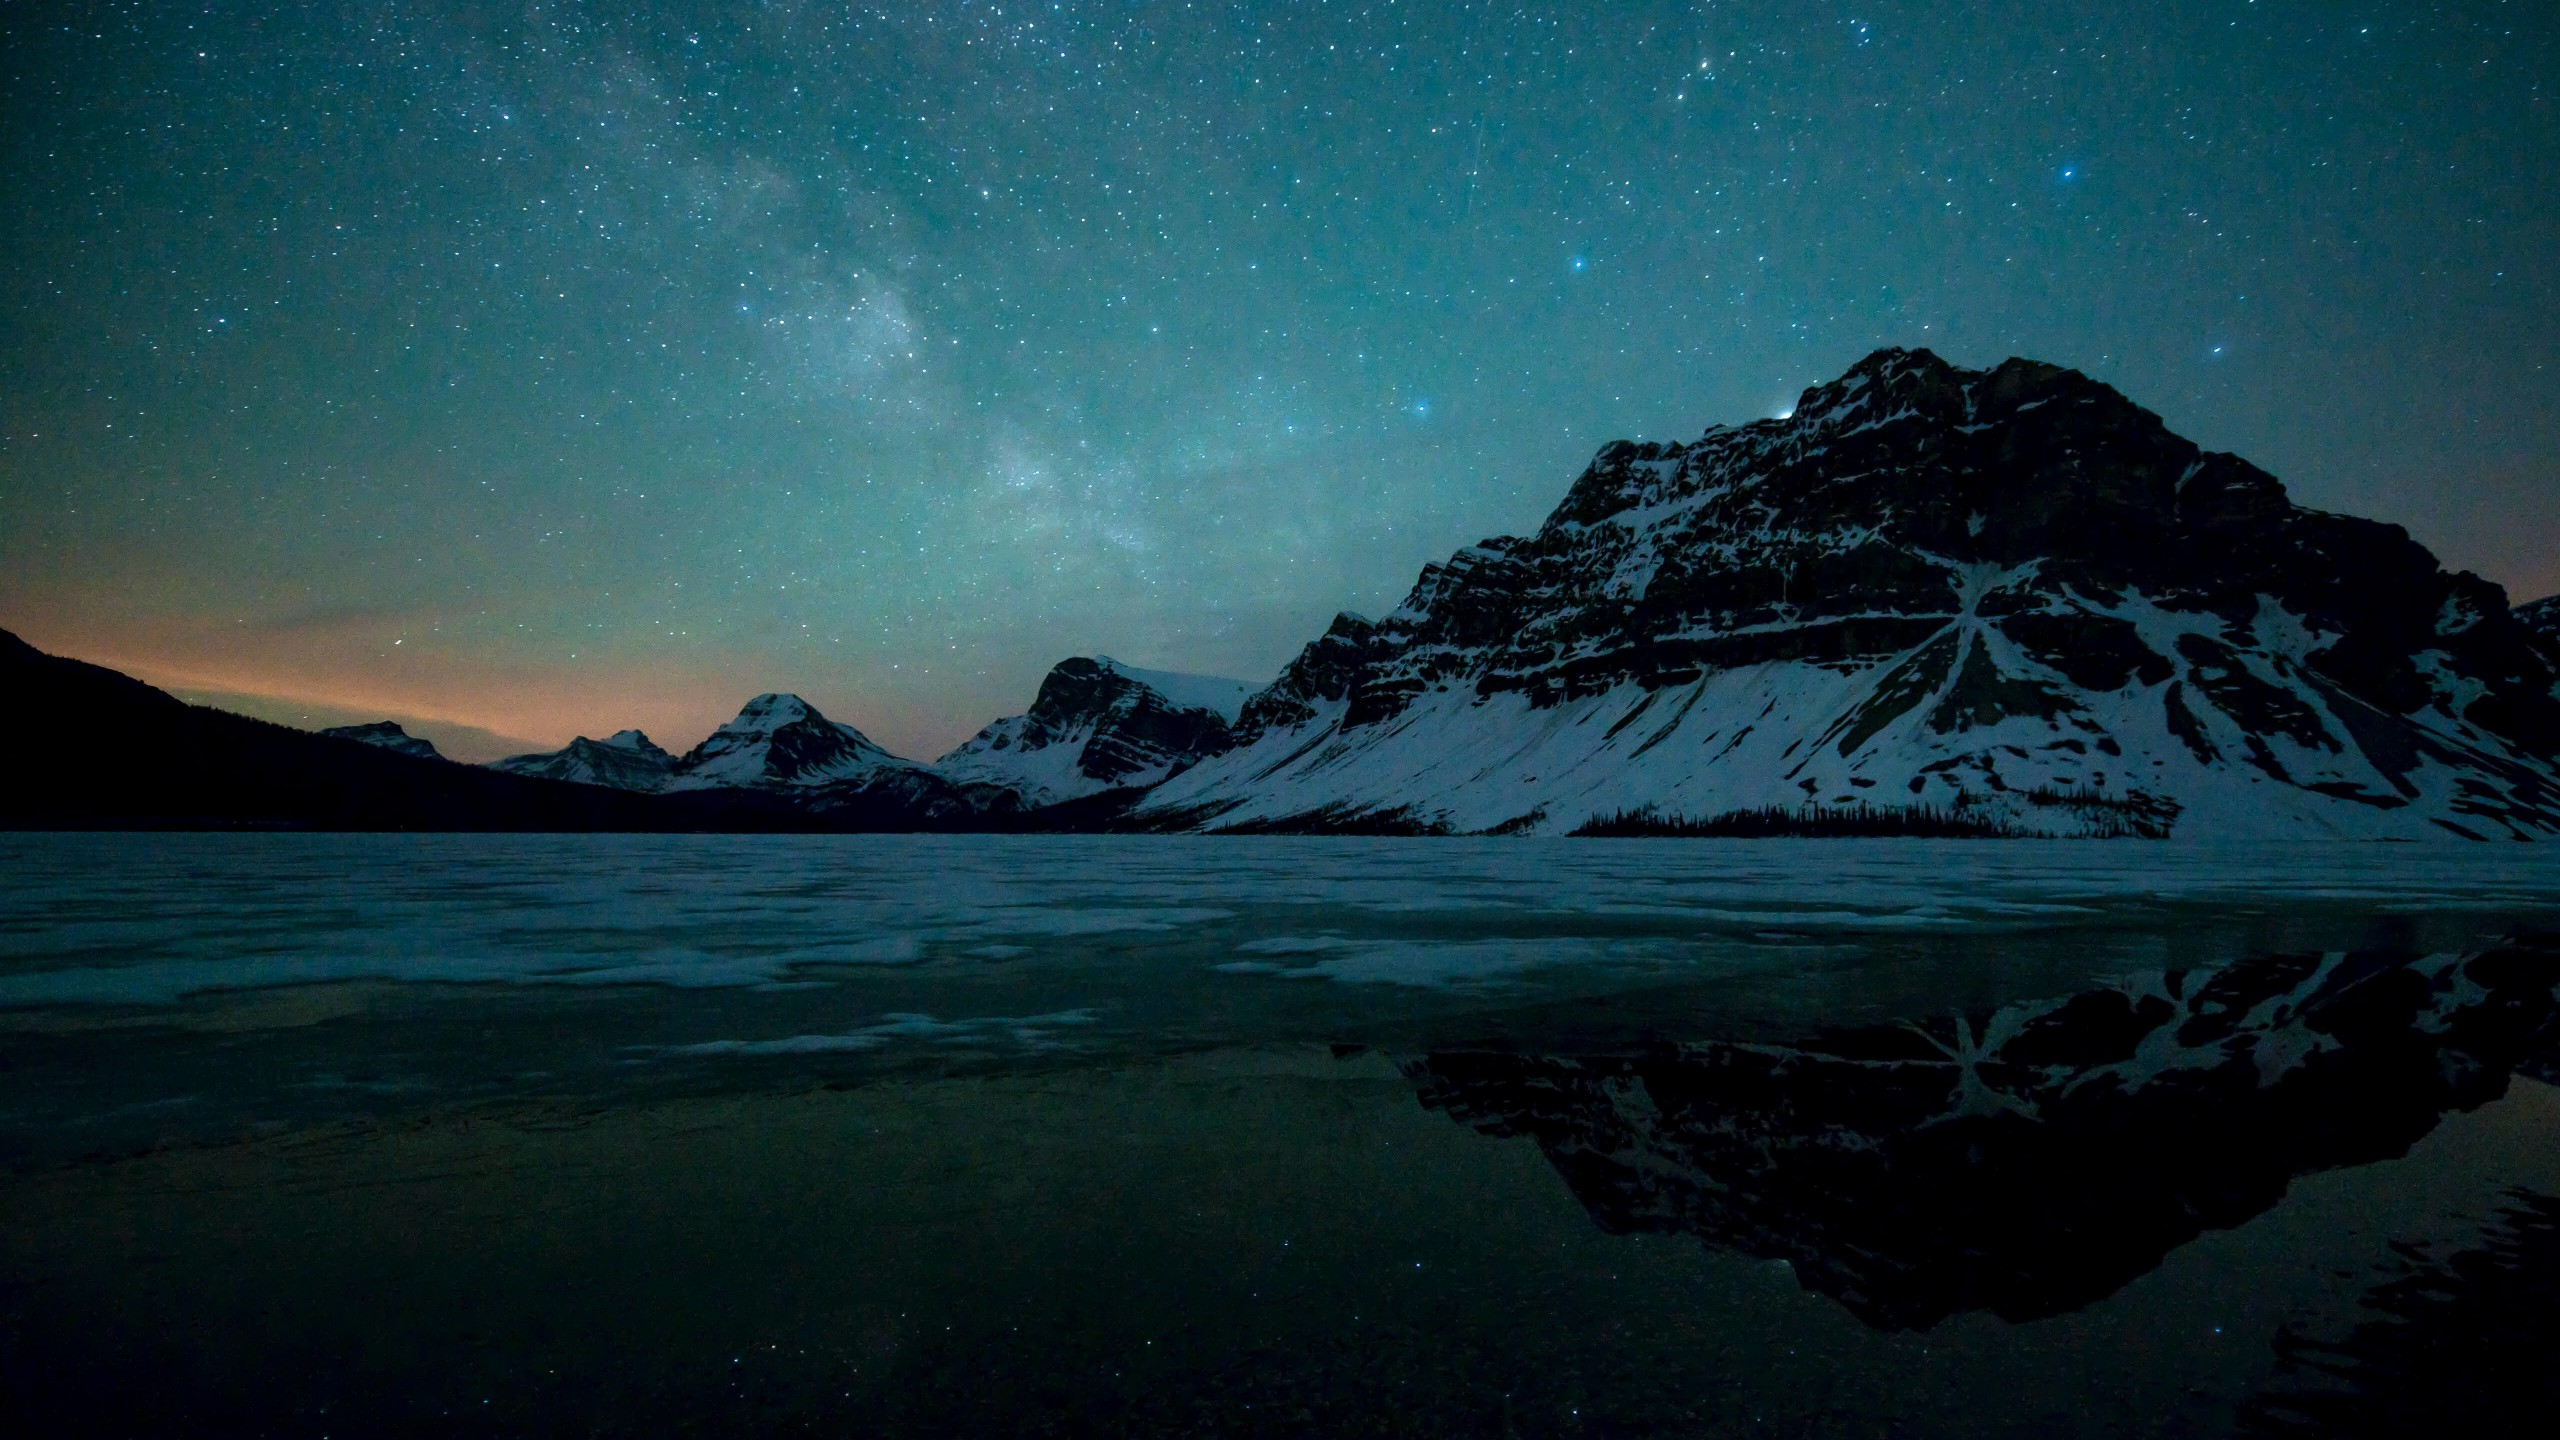 Milky Way over Bow Lake, Alberta, Canada Wallpaper for Desktop 2560x1440